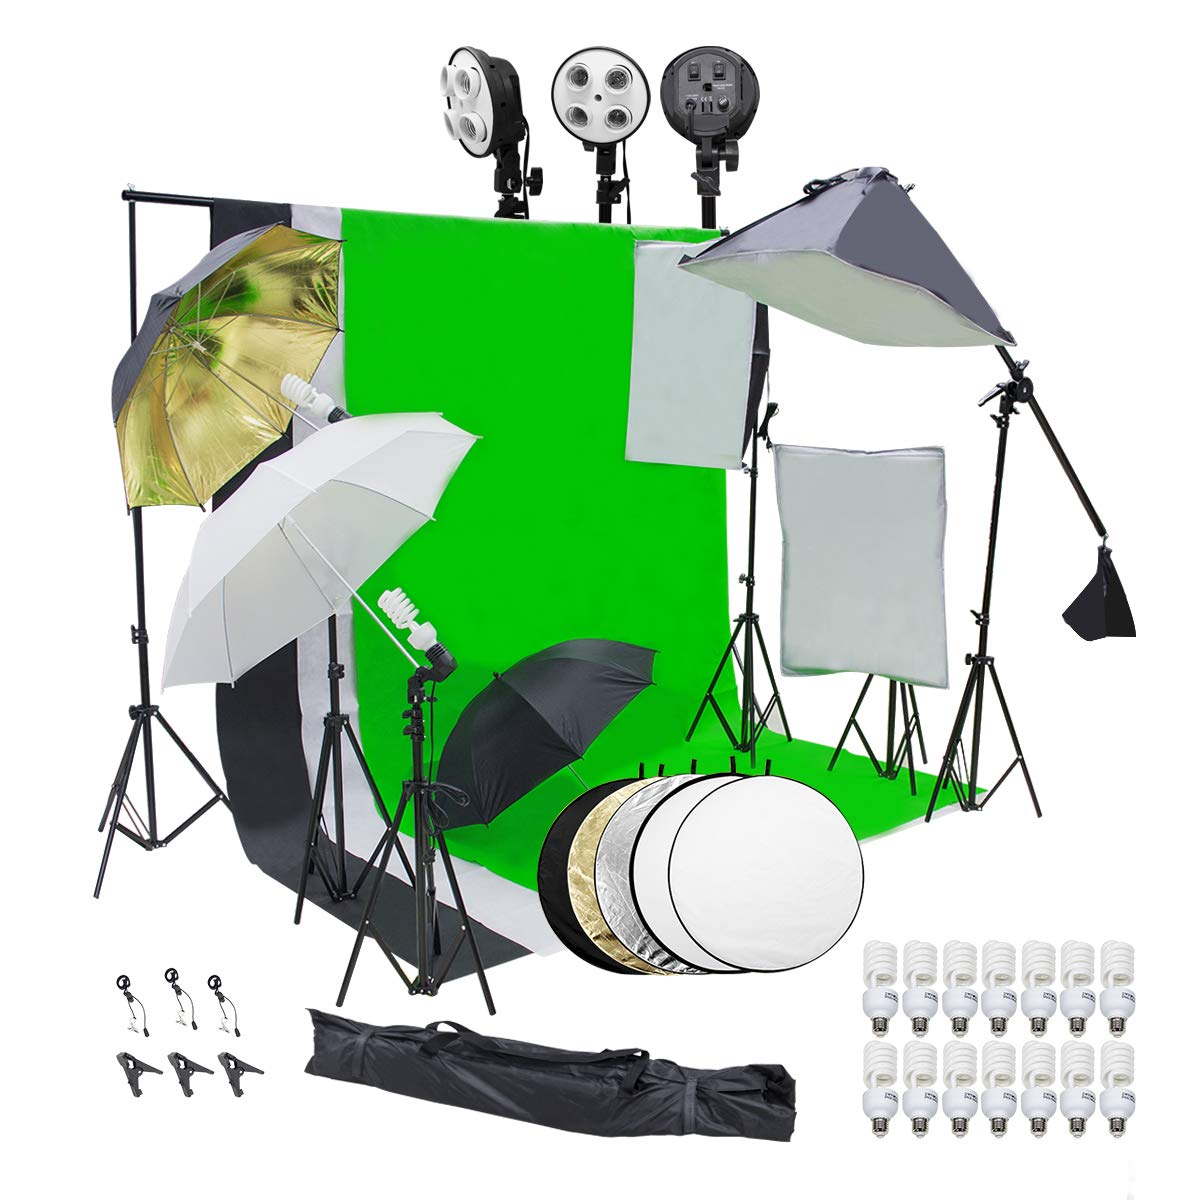 Wisamic Photography Video Studio Lighting Kit, Background Support System 10ft x 6.6ft/2MX3M with 3 Color Backdrop, 3 Umbrella, 3 Softbox, Continuous Lighting Kit for Photo Video Shooting Photography by Wisamic